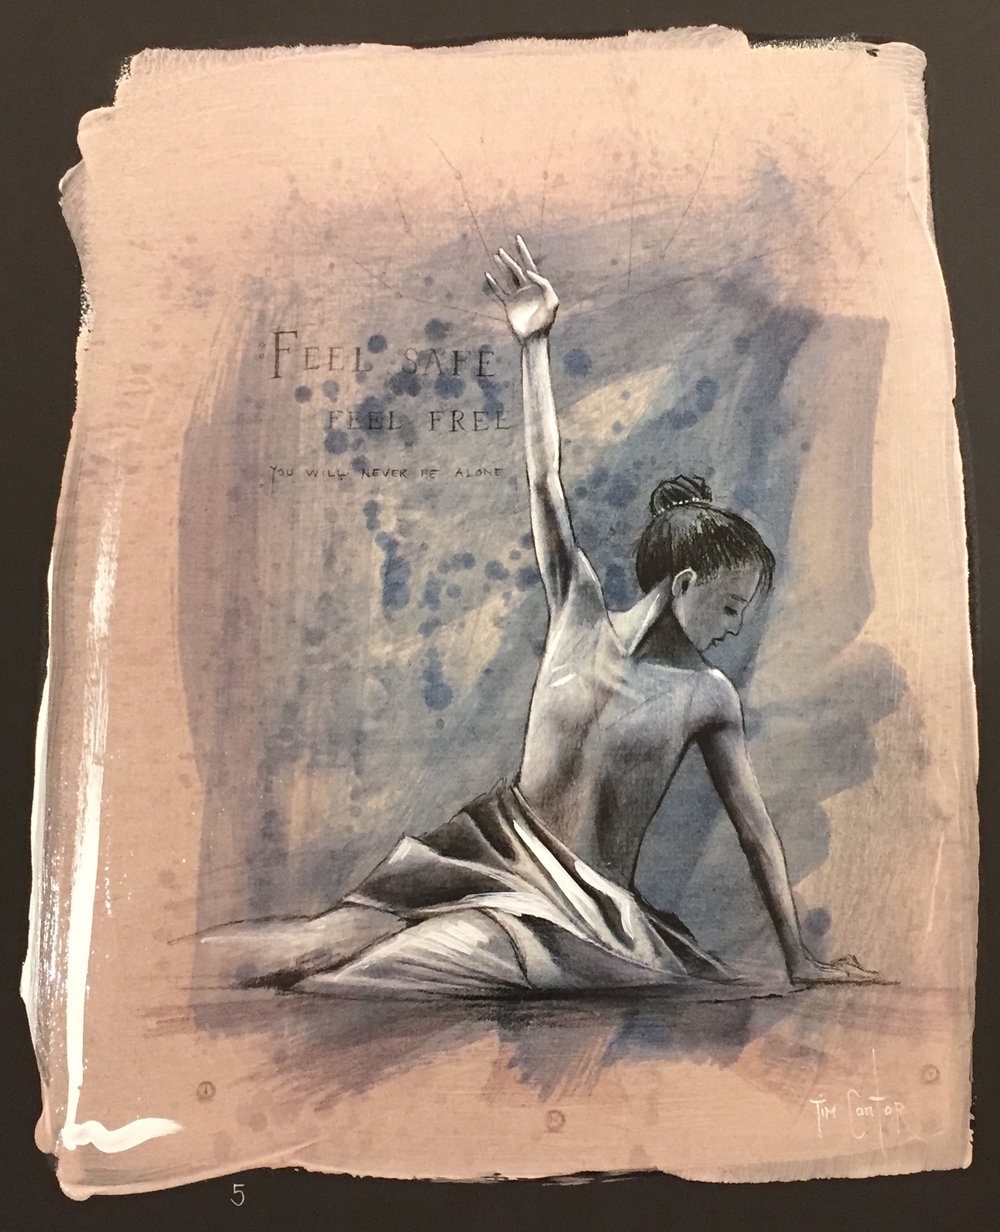 Selfless Ballerina    2010/2016  Chiarograph on Paper   13 x 10 in.